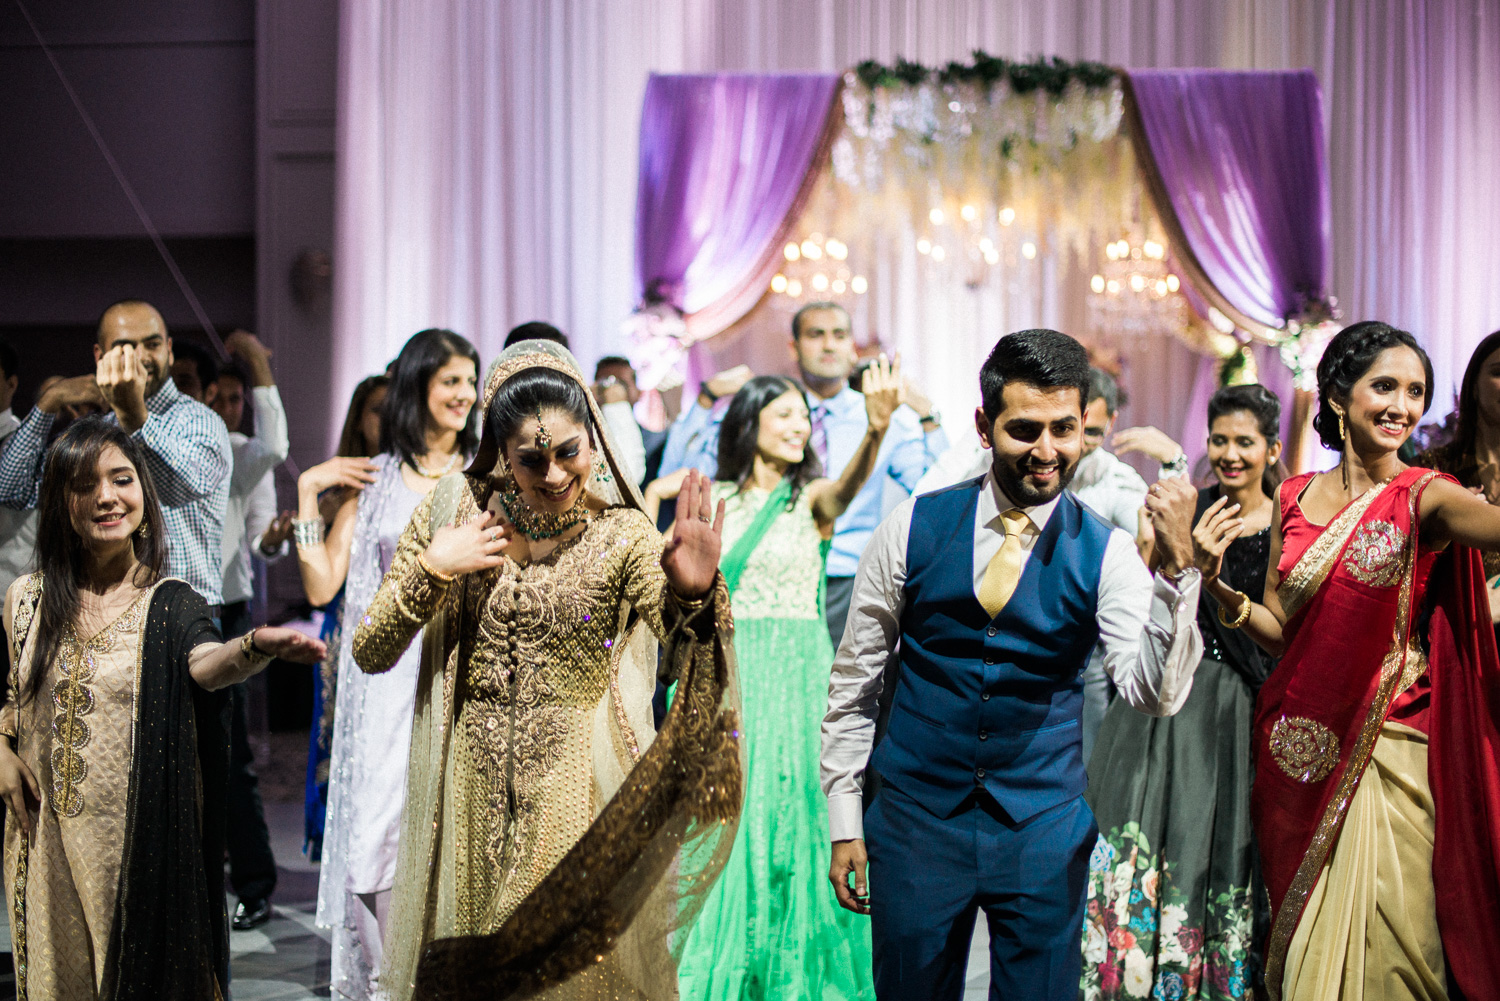 maha_salman_copper_creek_wedding-42.jpg